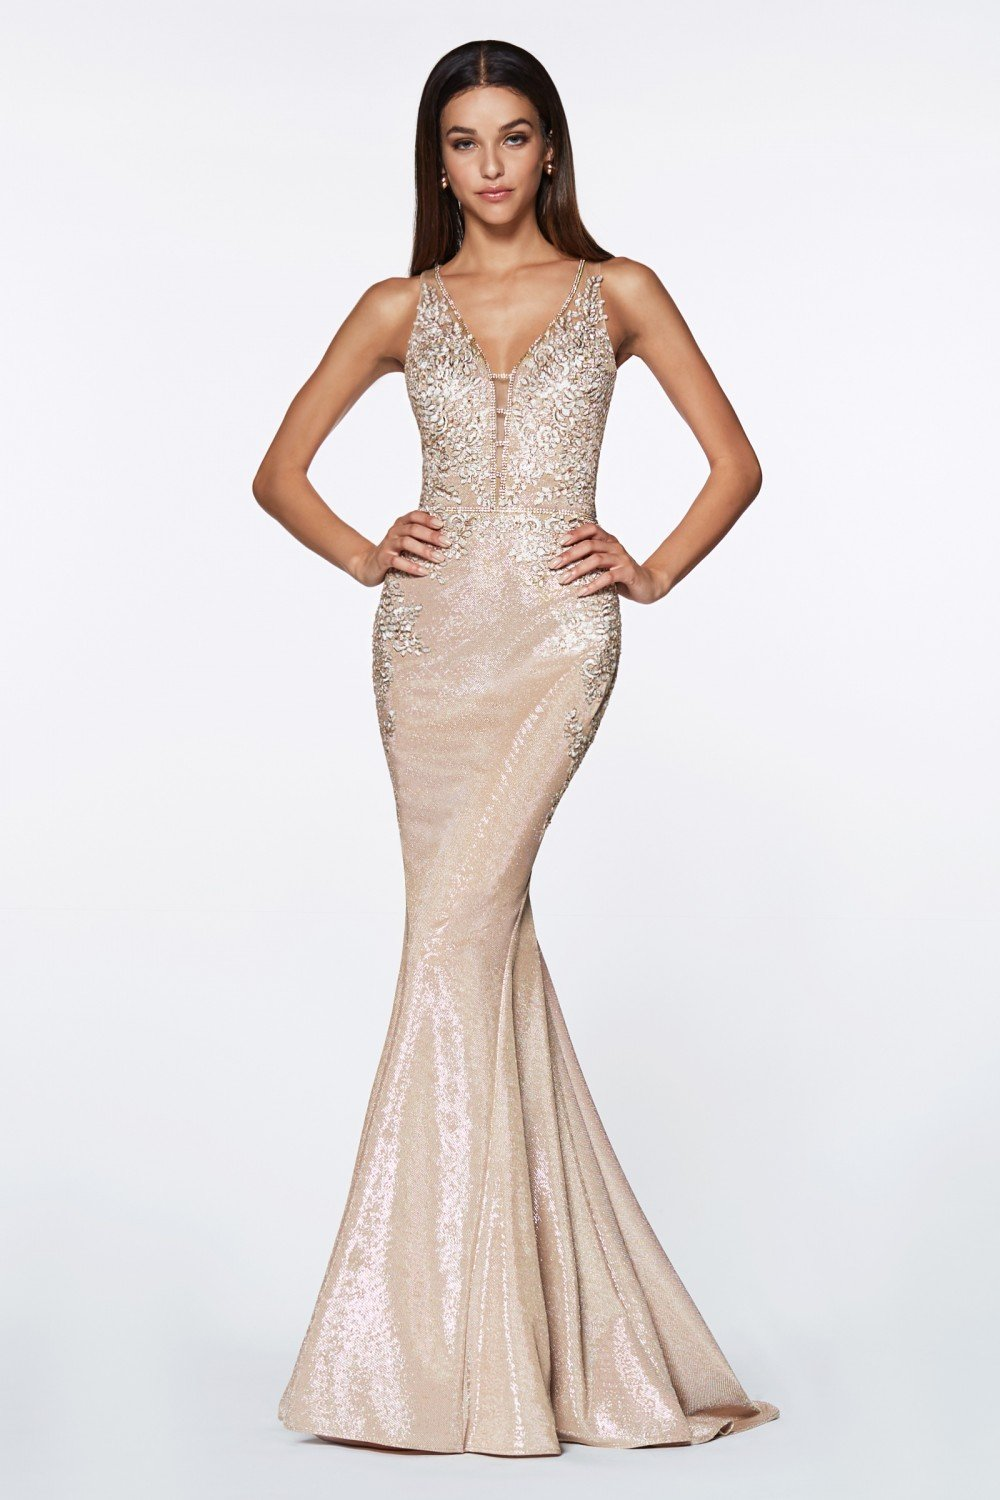 Cinderella Divine - CJ504 Floral Applique Deep V-Neck Mermaid Gown